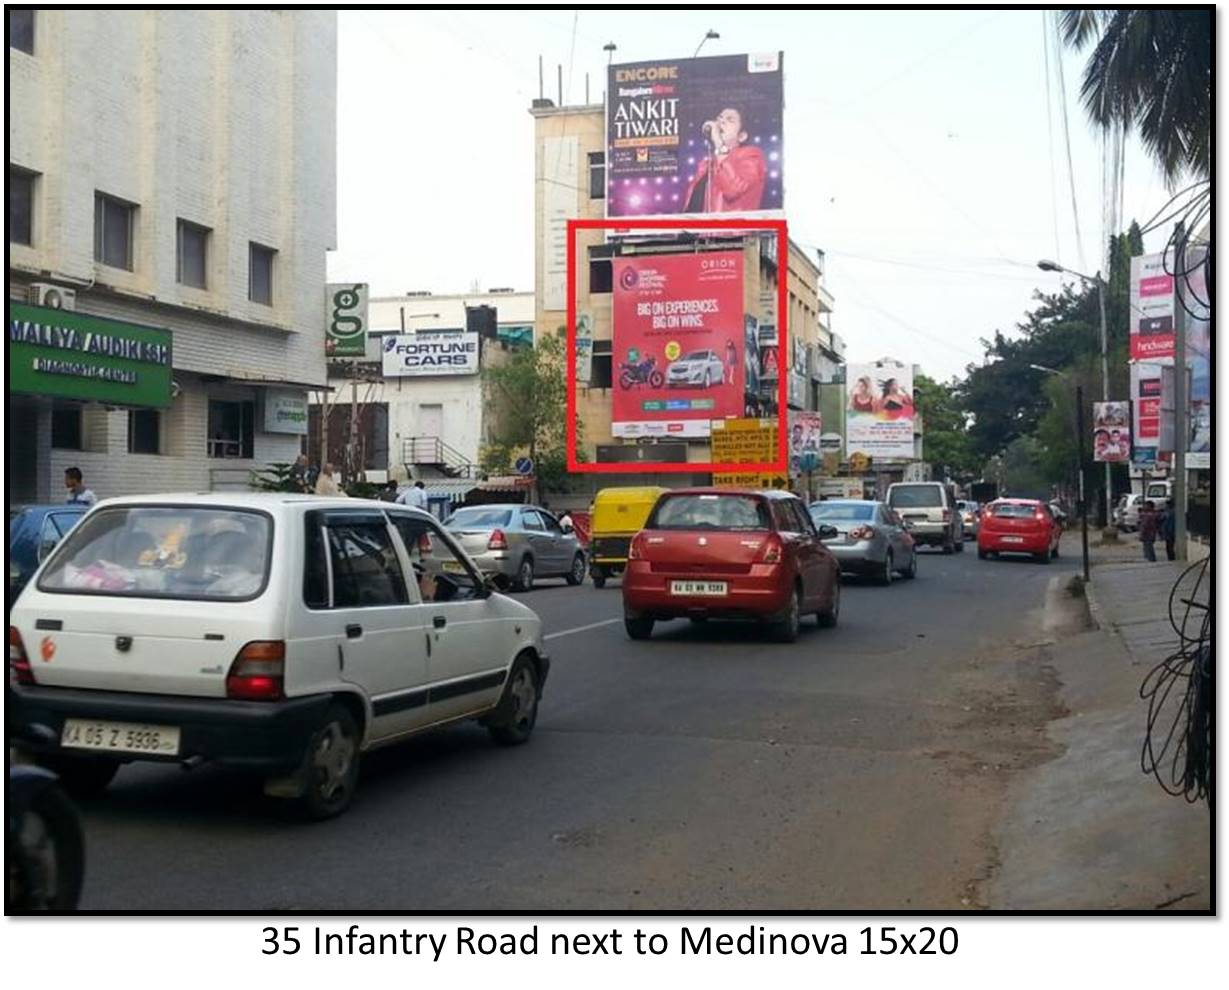 Infantry Road next to Medinova, Bengaluru